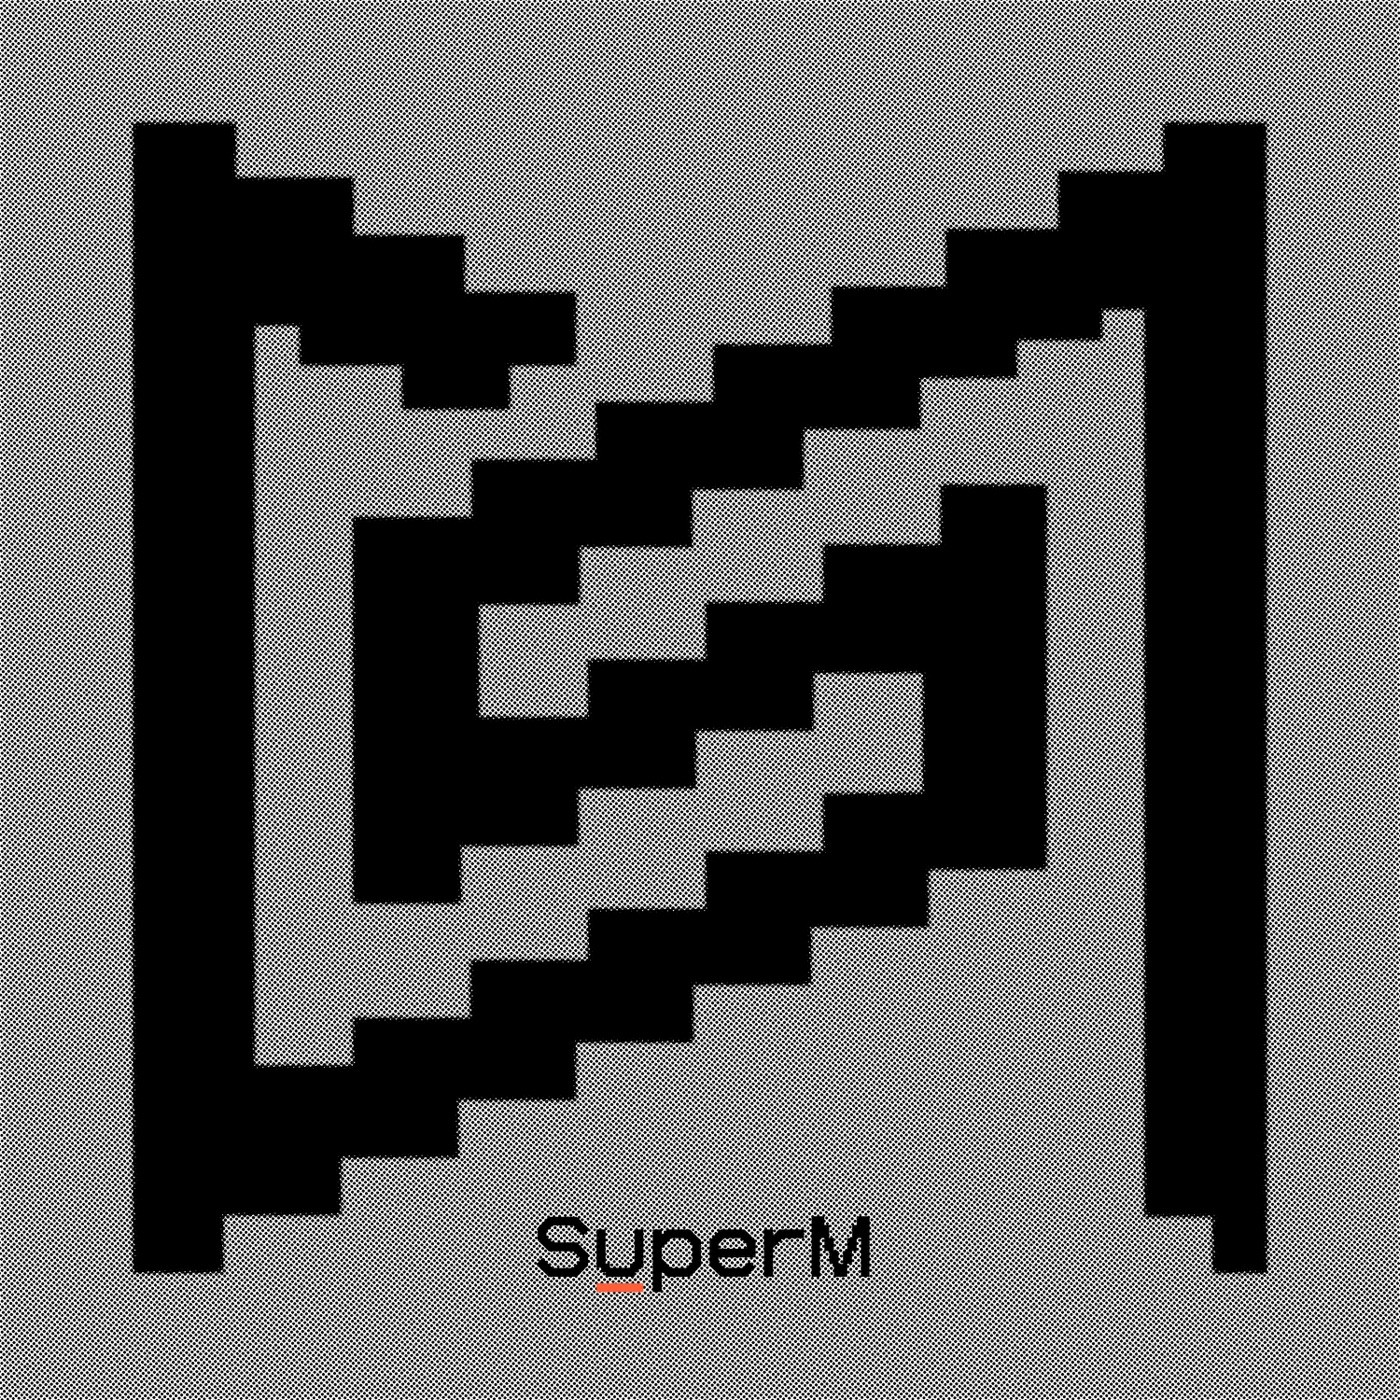 SuperM – Super One [24bit Lossless + MP3 320 / WEB] [2020.09.25]